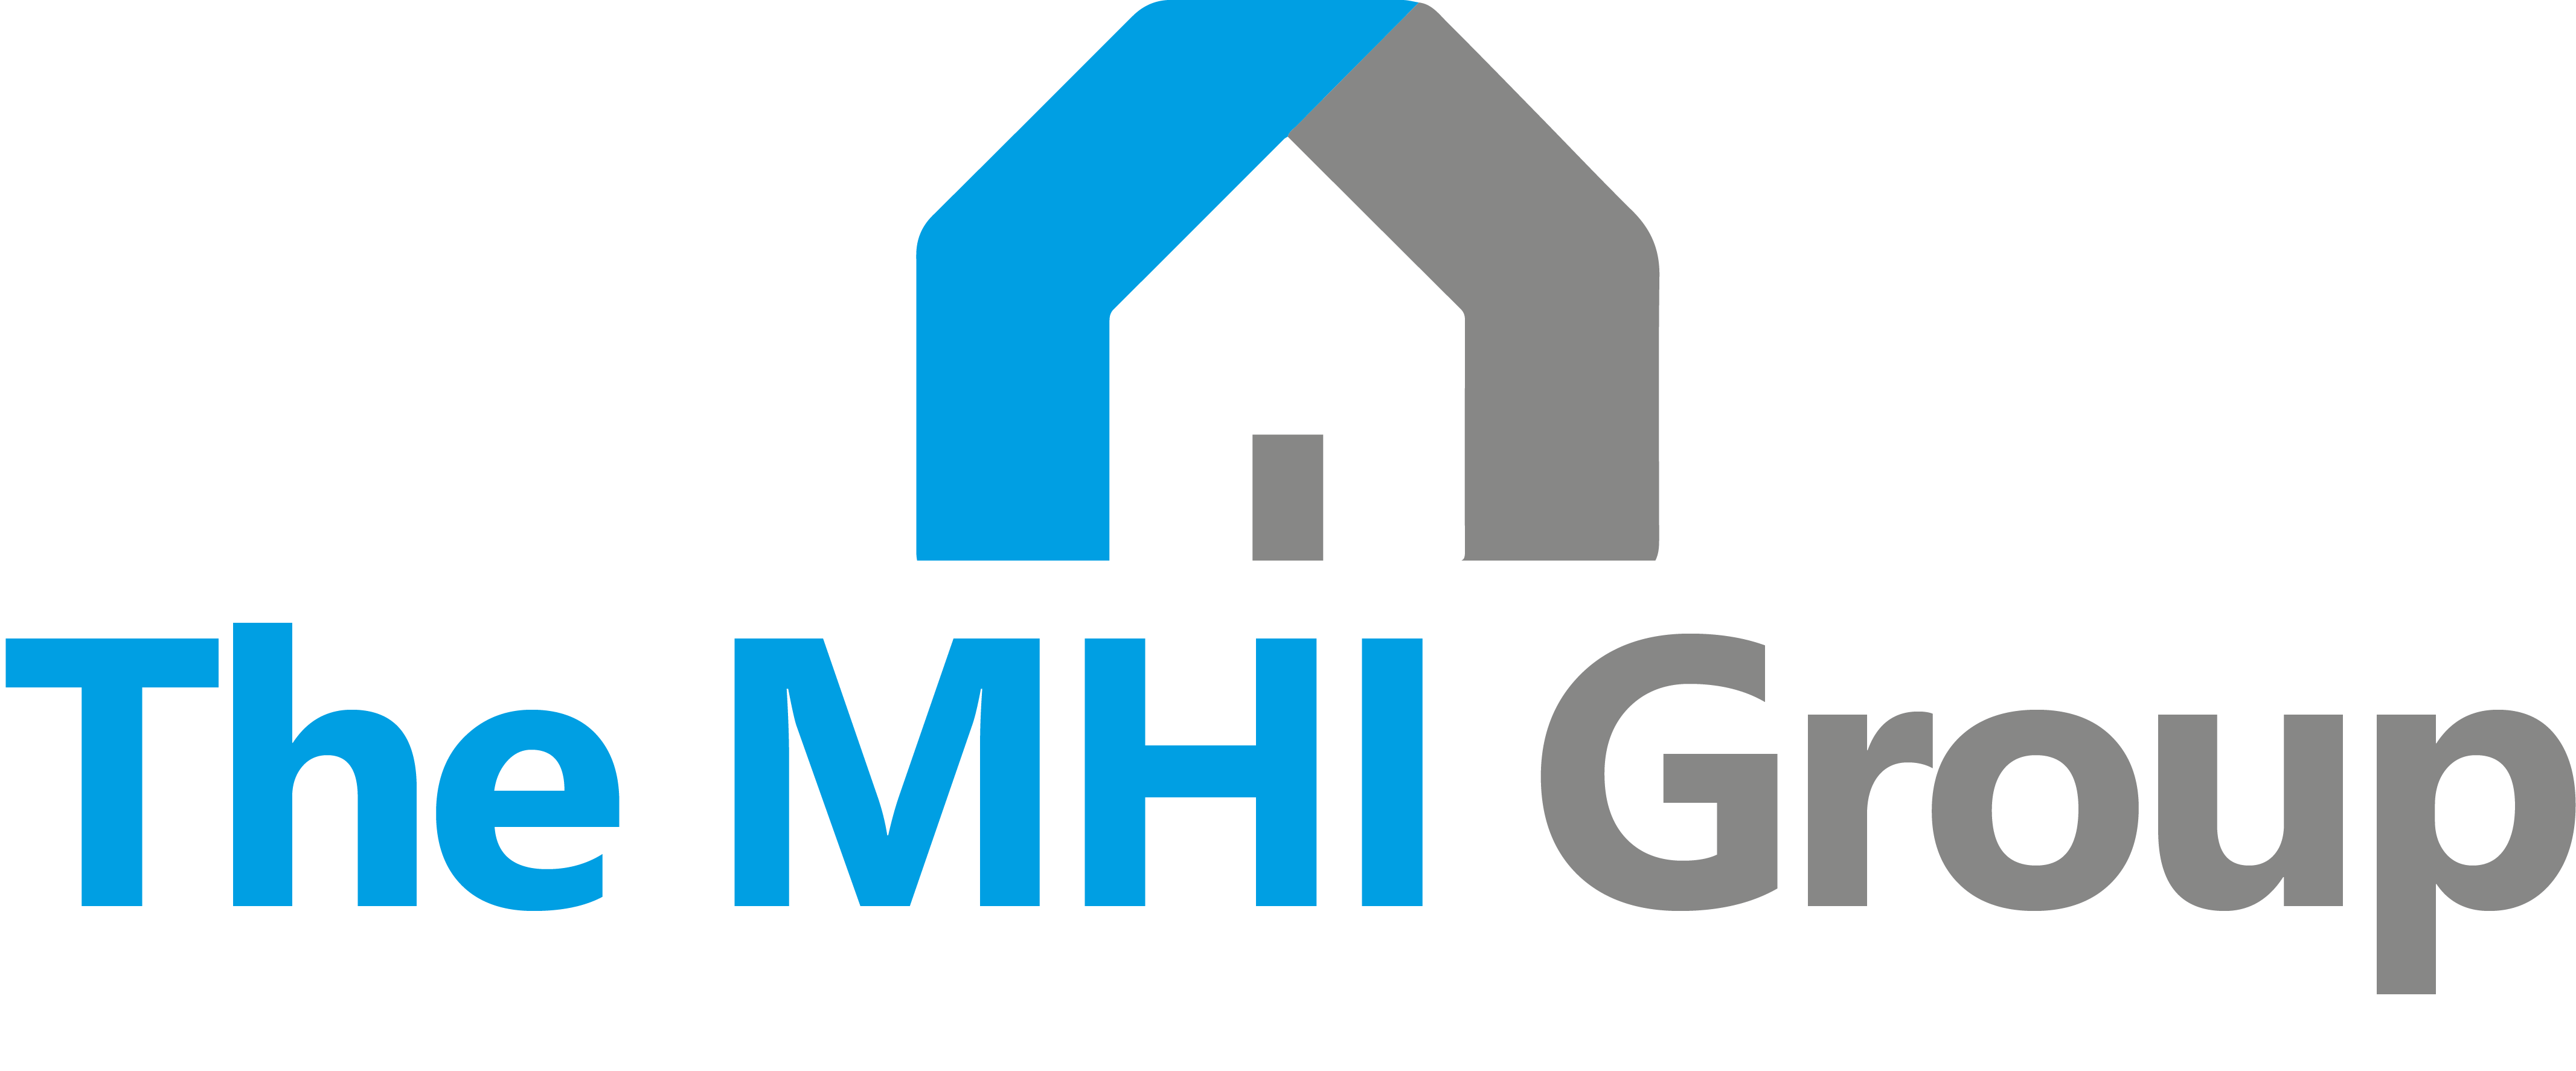 I would certainly recommend The MHI Group